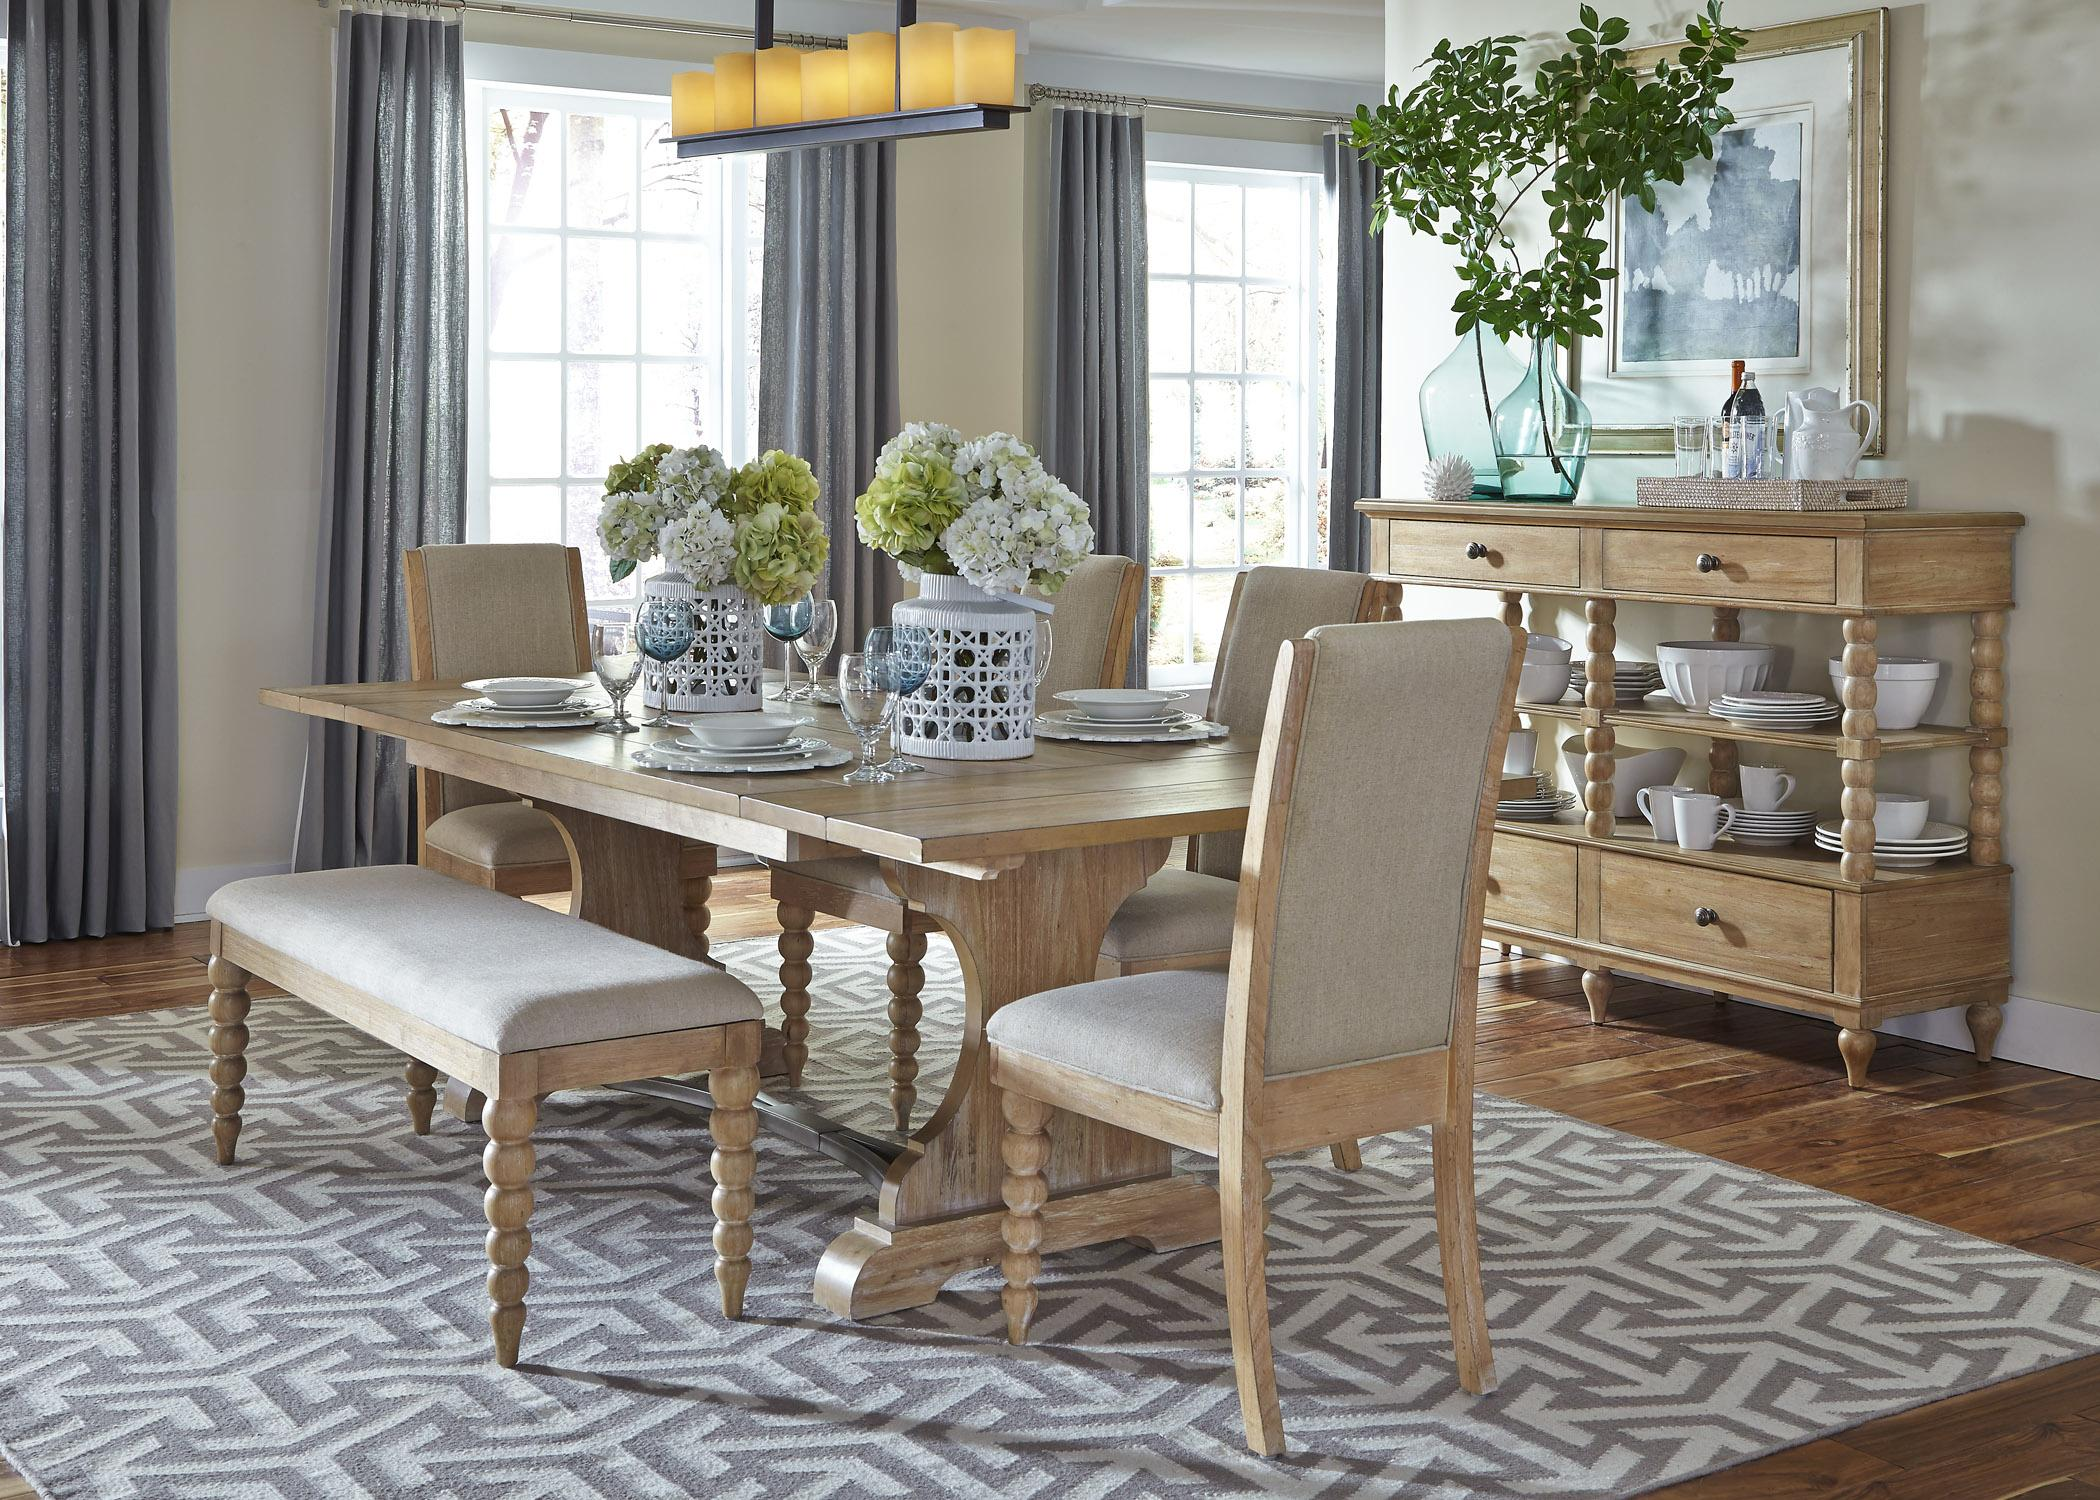 Liberty Furniture Harbor View Casual Dining Room Group - Item Number: 531 Dining Room Group